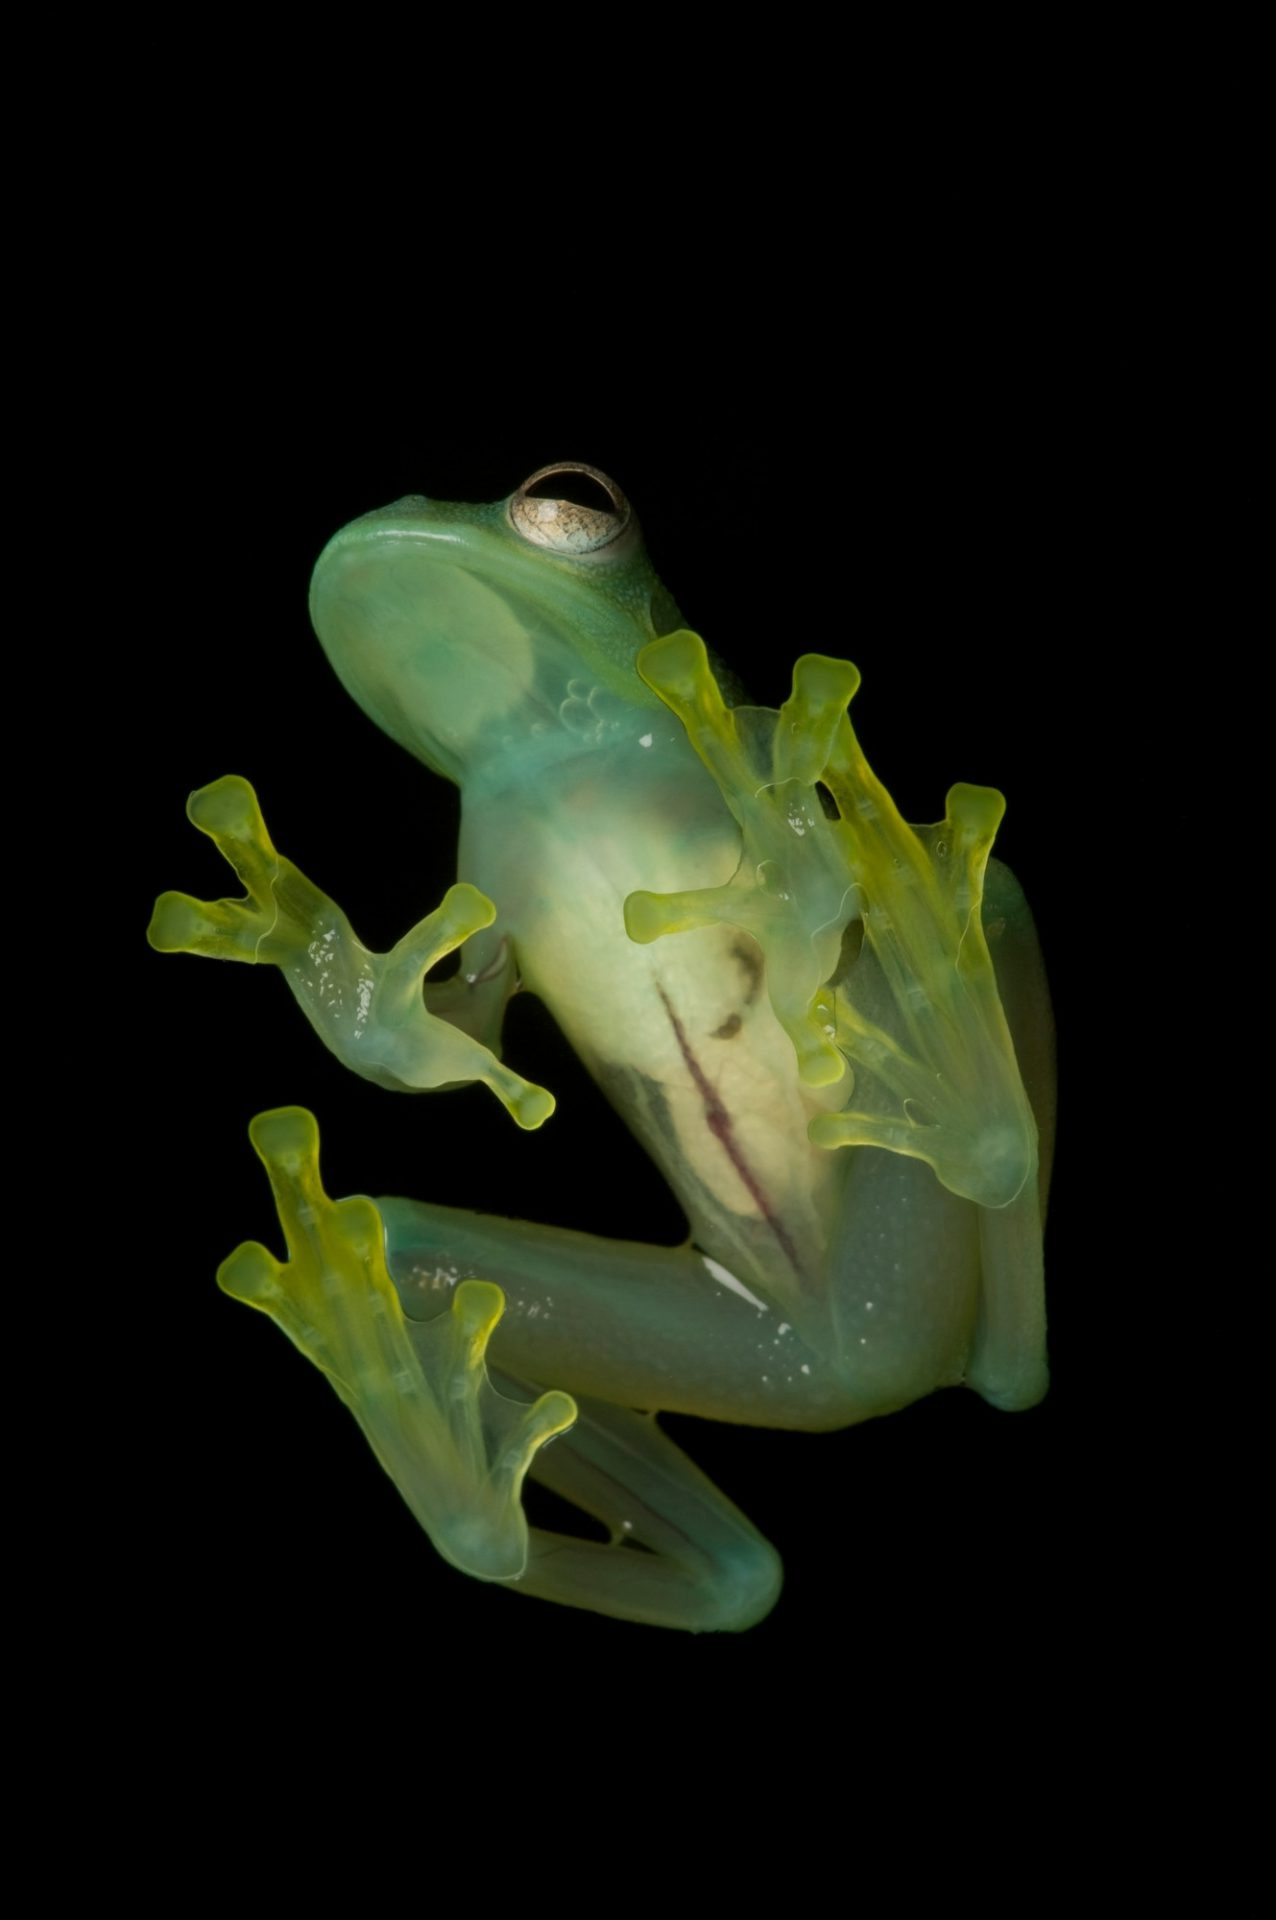 Grainy Cochran frog (Cochranella granulosa), a species of glass frog, at Henry Vilas Zoo in Madison, WI.